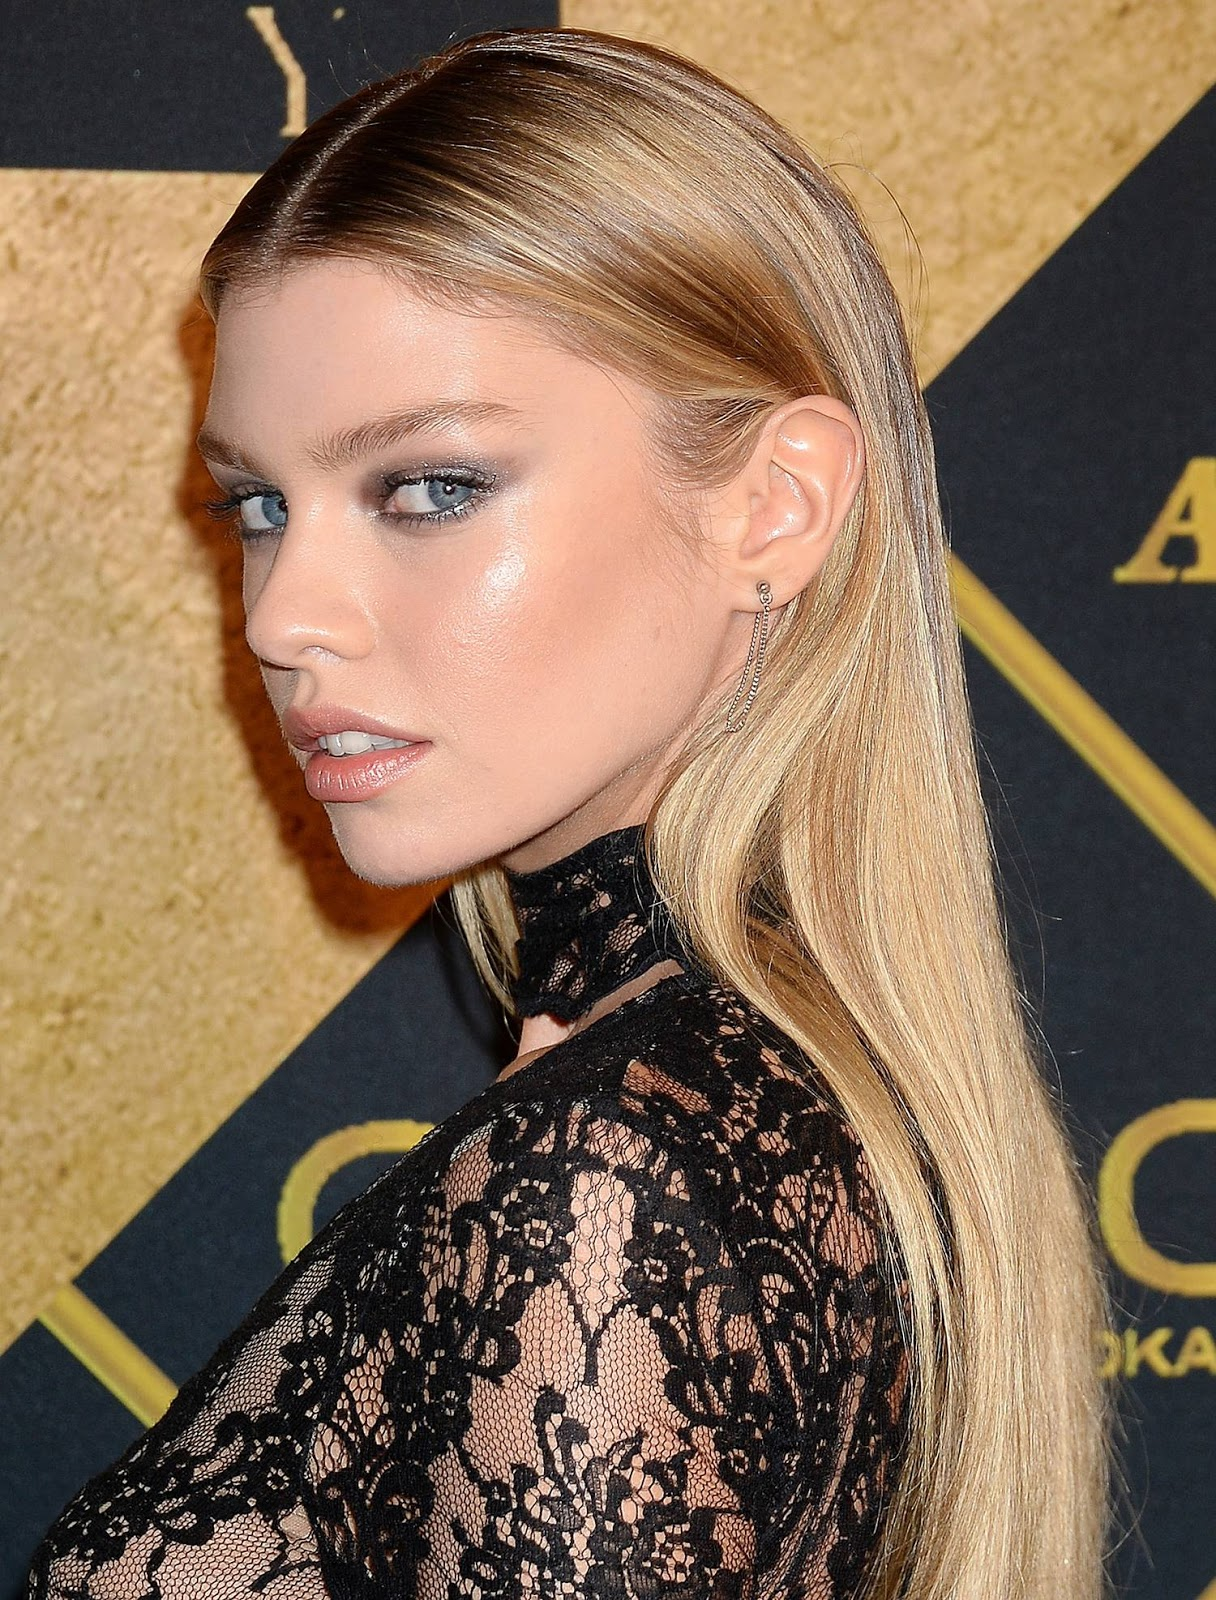 Stella Maxwell wears a racy black gown to the 2016 Maxim Hot 100 party in LA